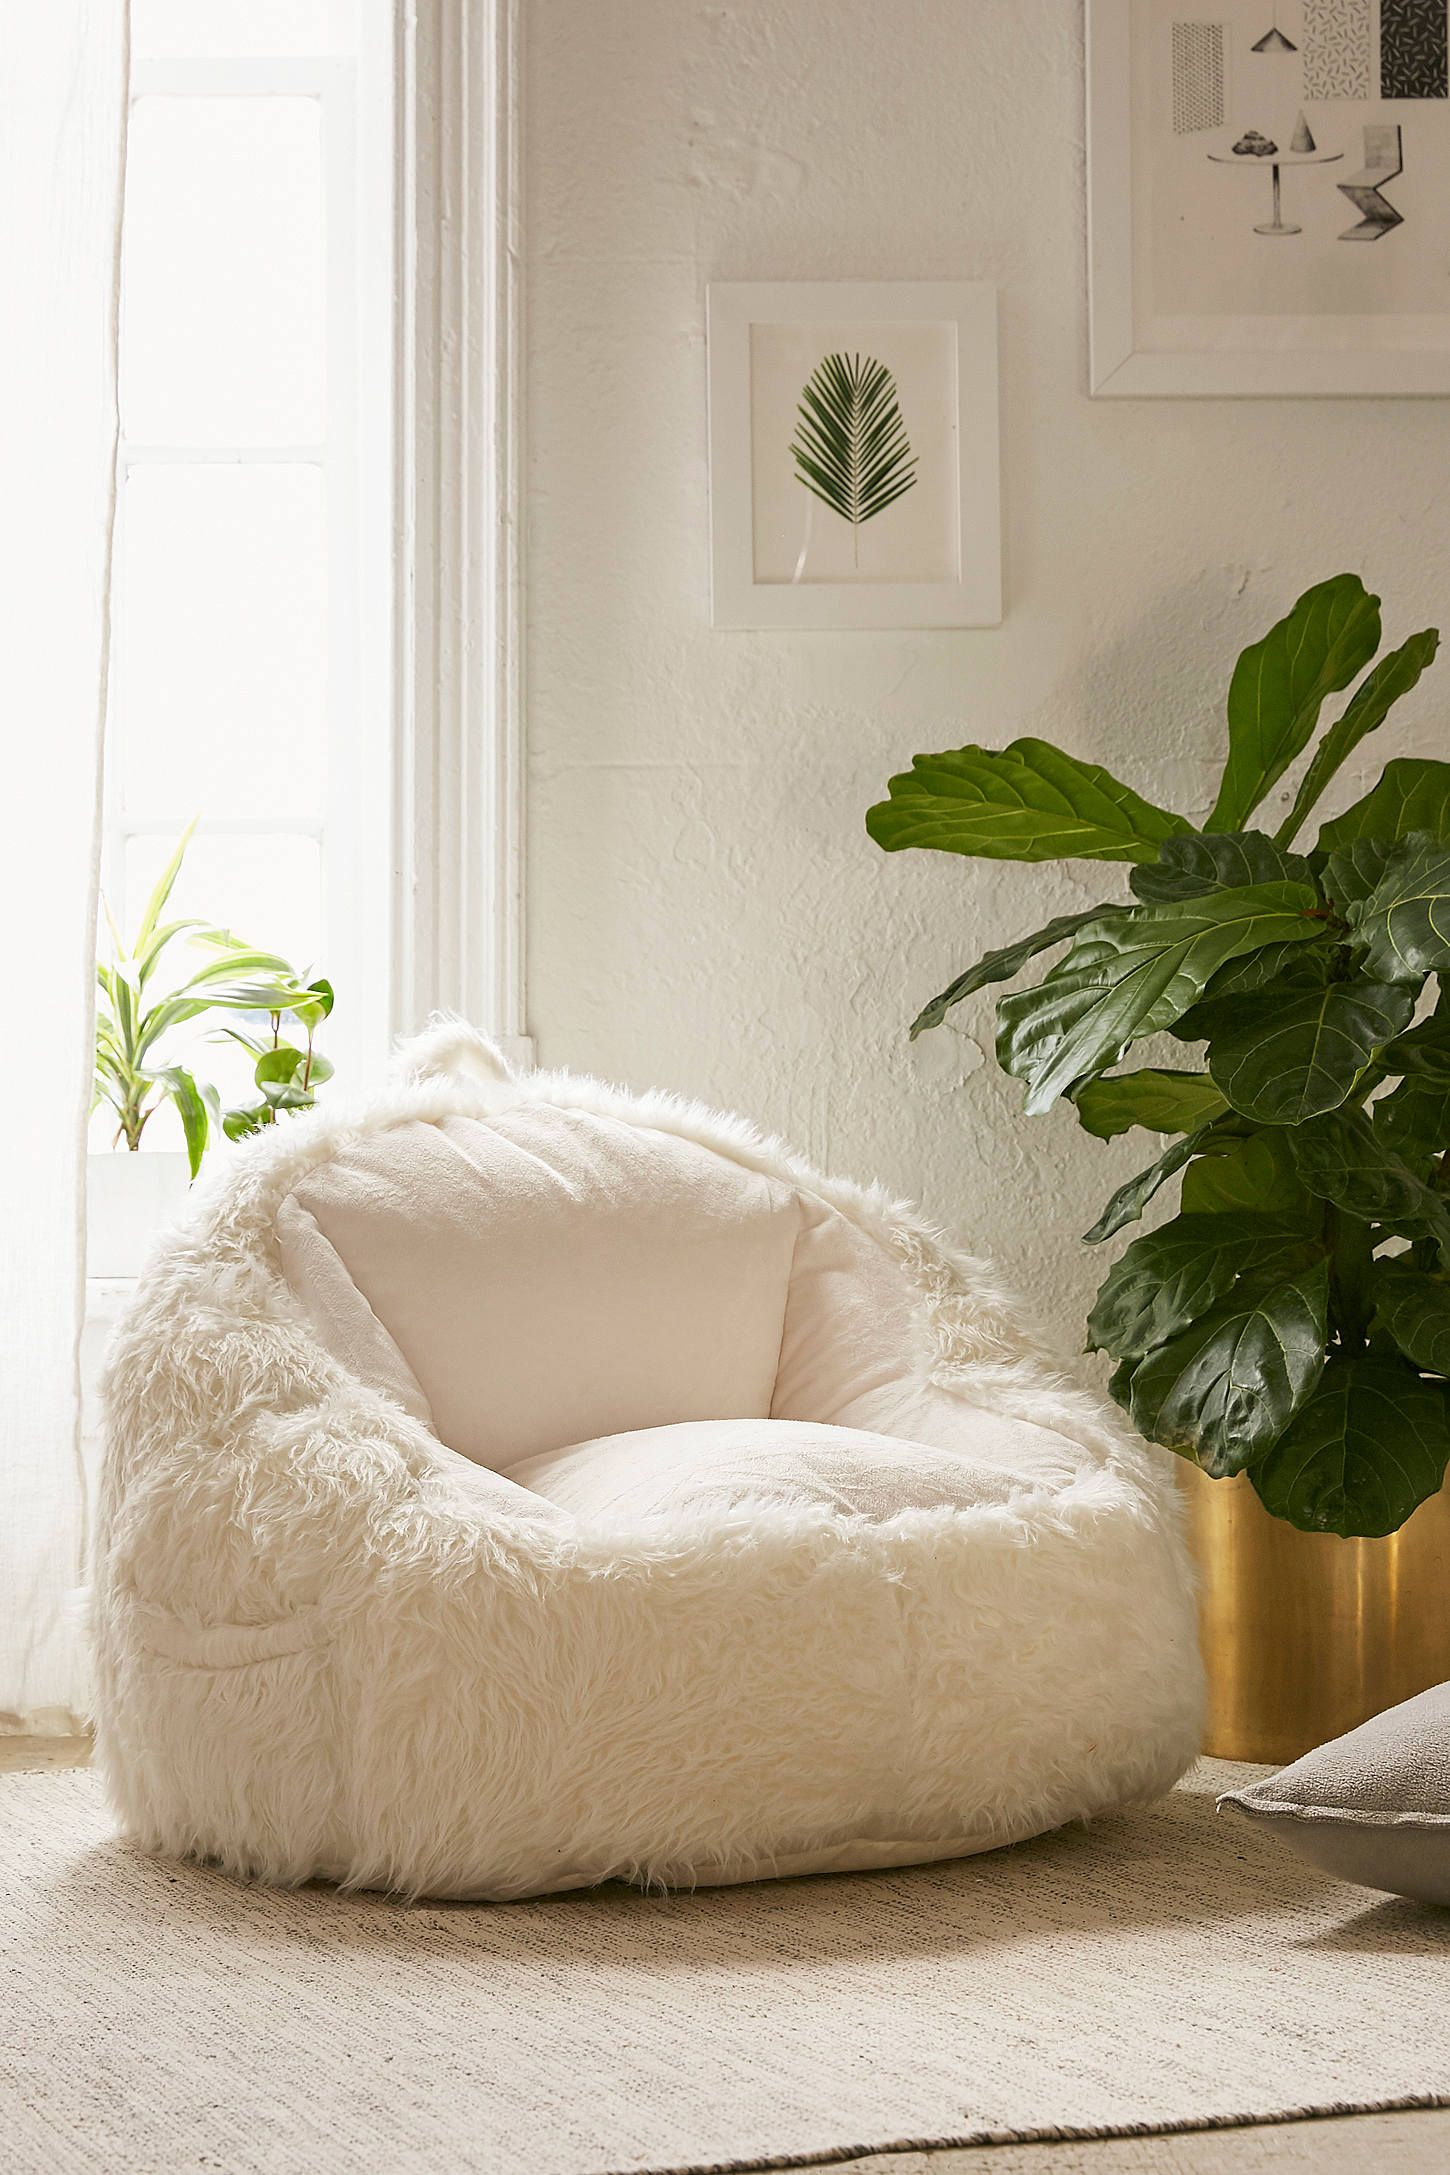 Faux Fur Electronics Storage Bean Bag Chair | Bean bag chair, Bean ...